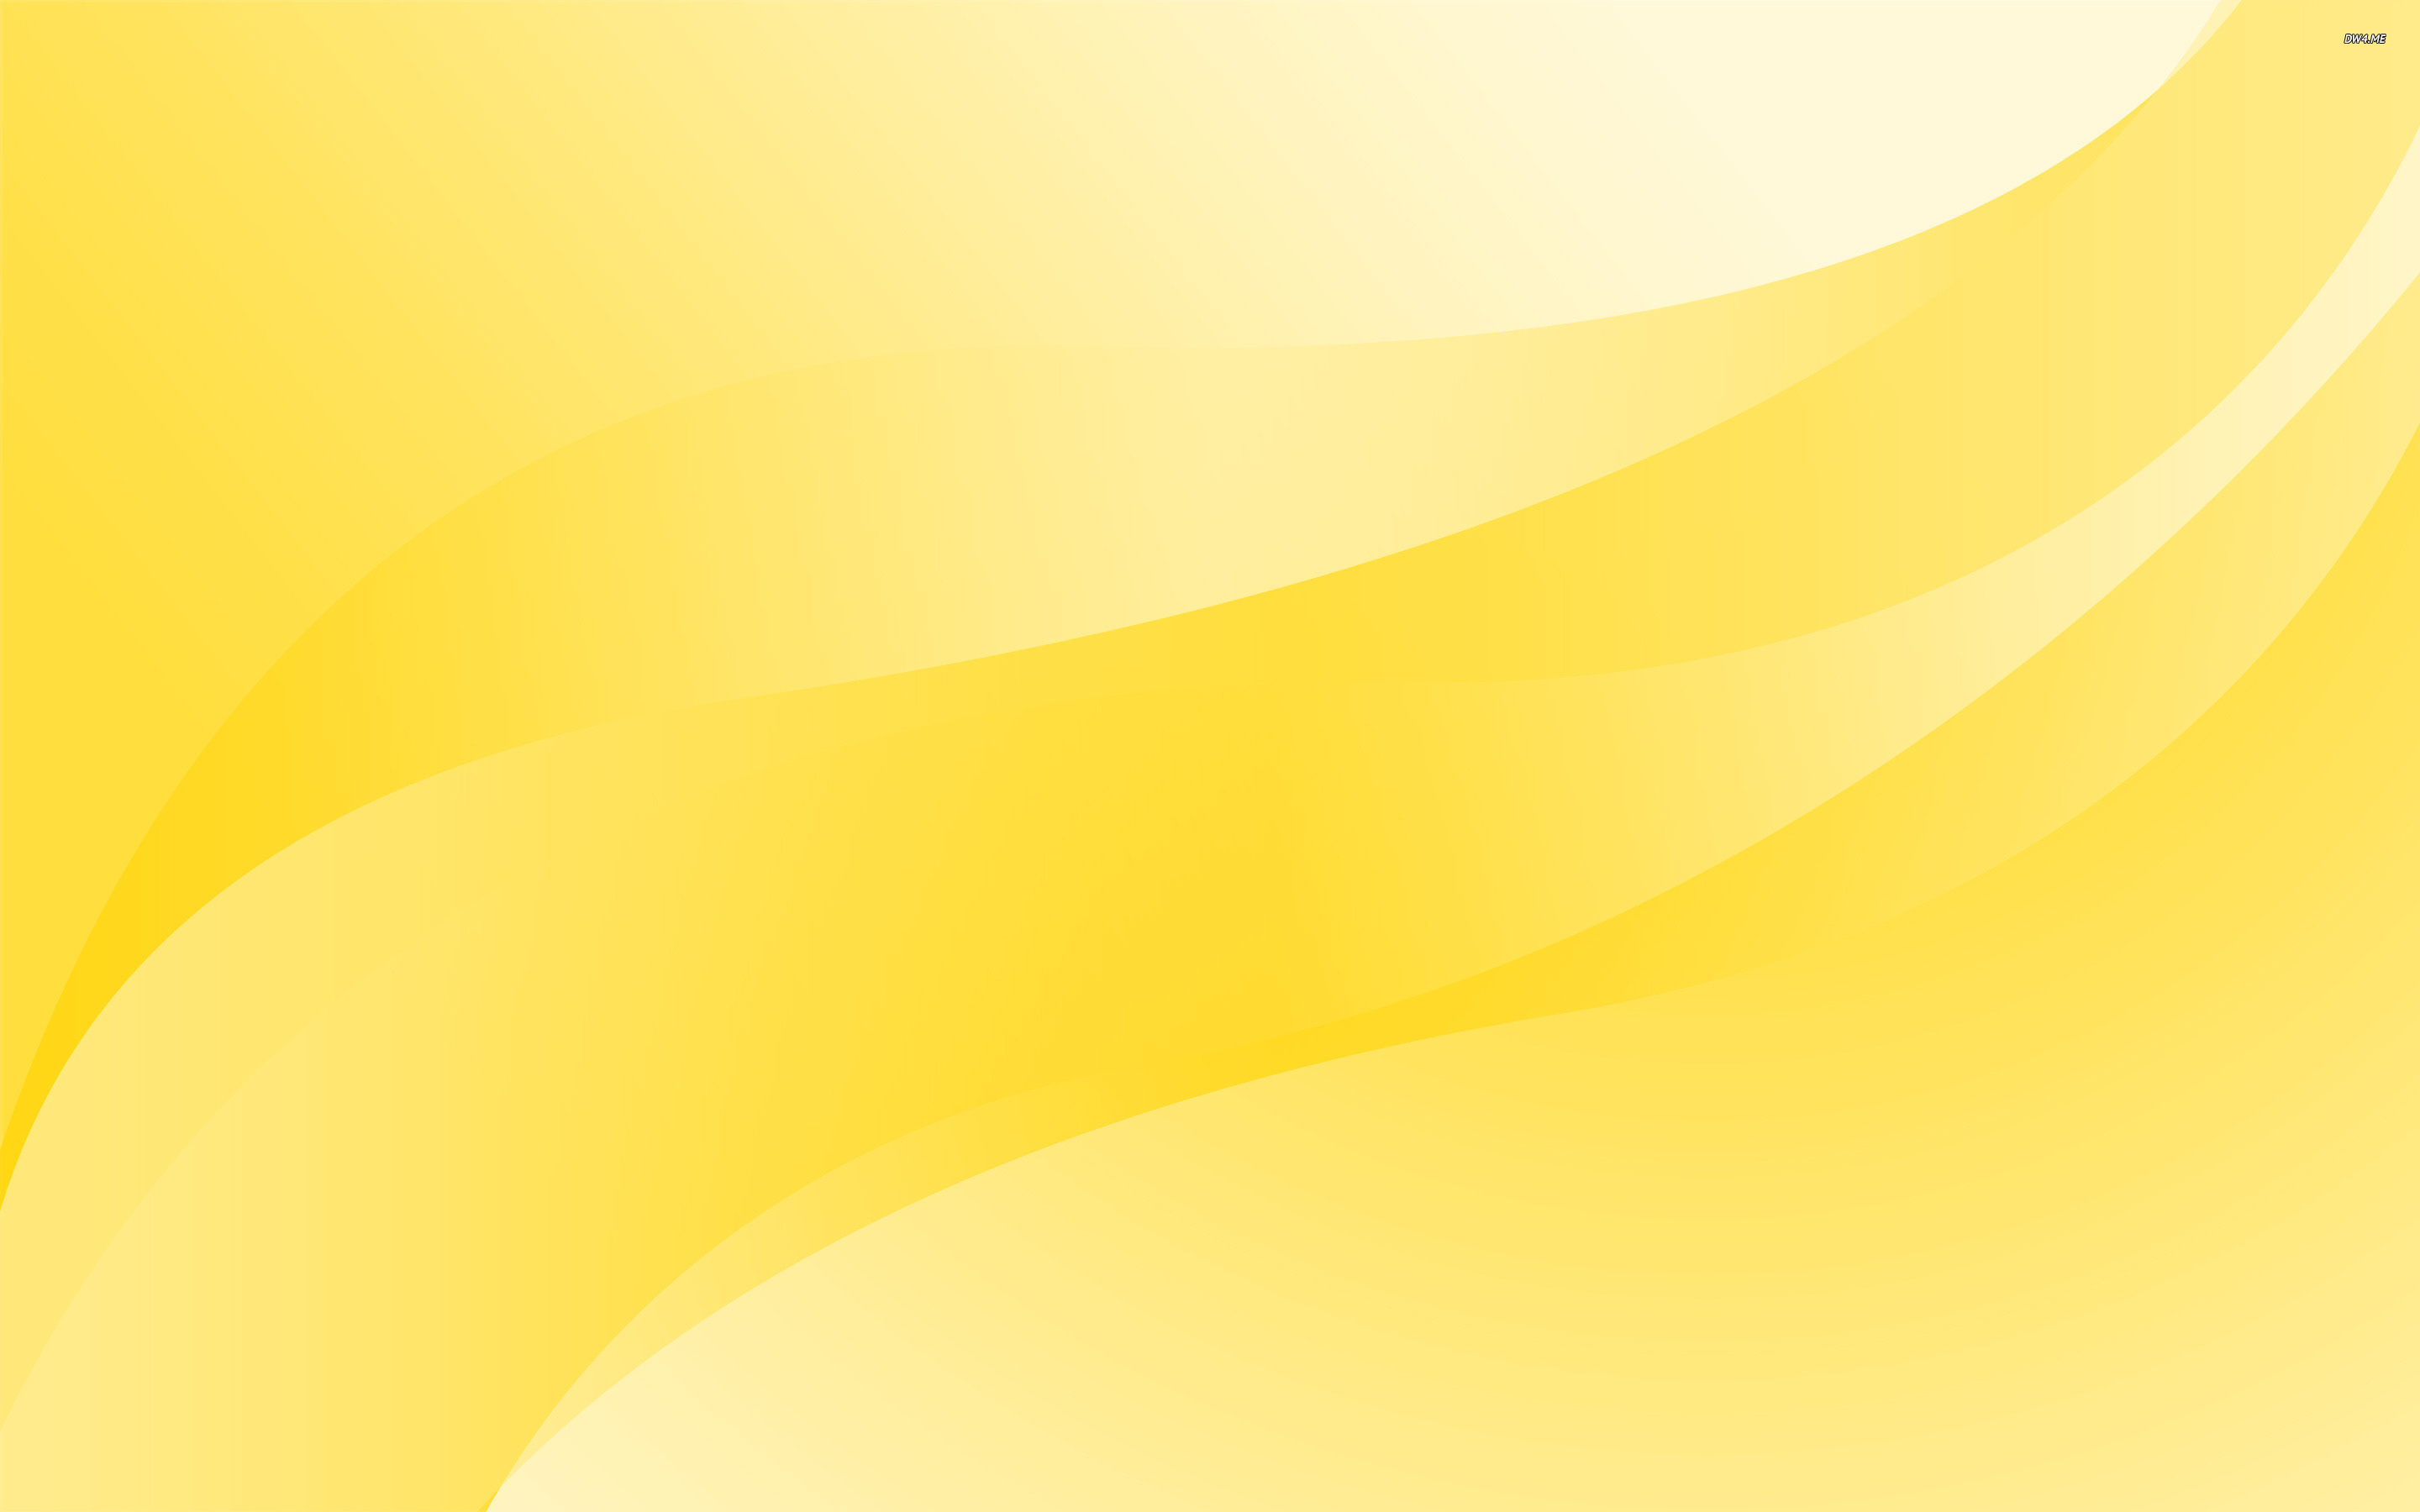 Yellow Abstract Wave Wallpaper 28585